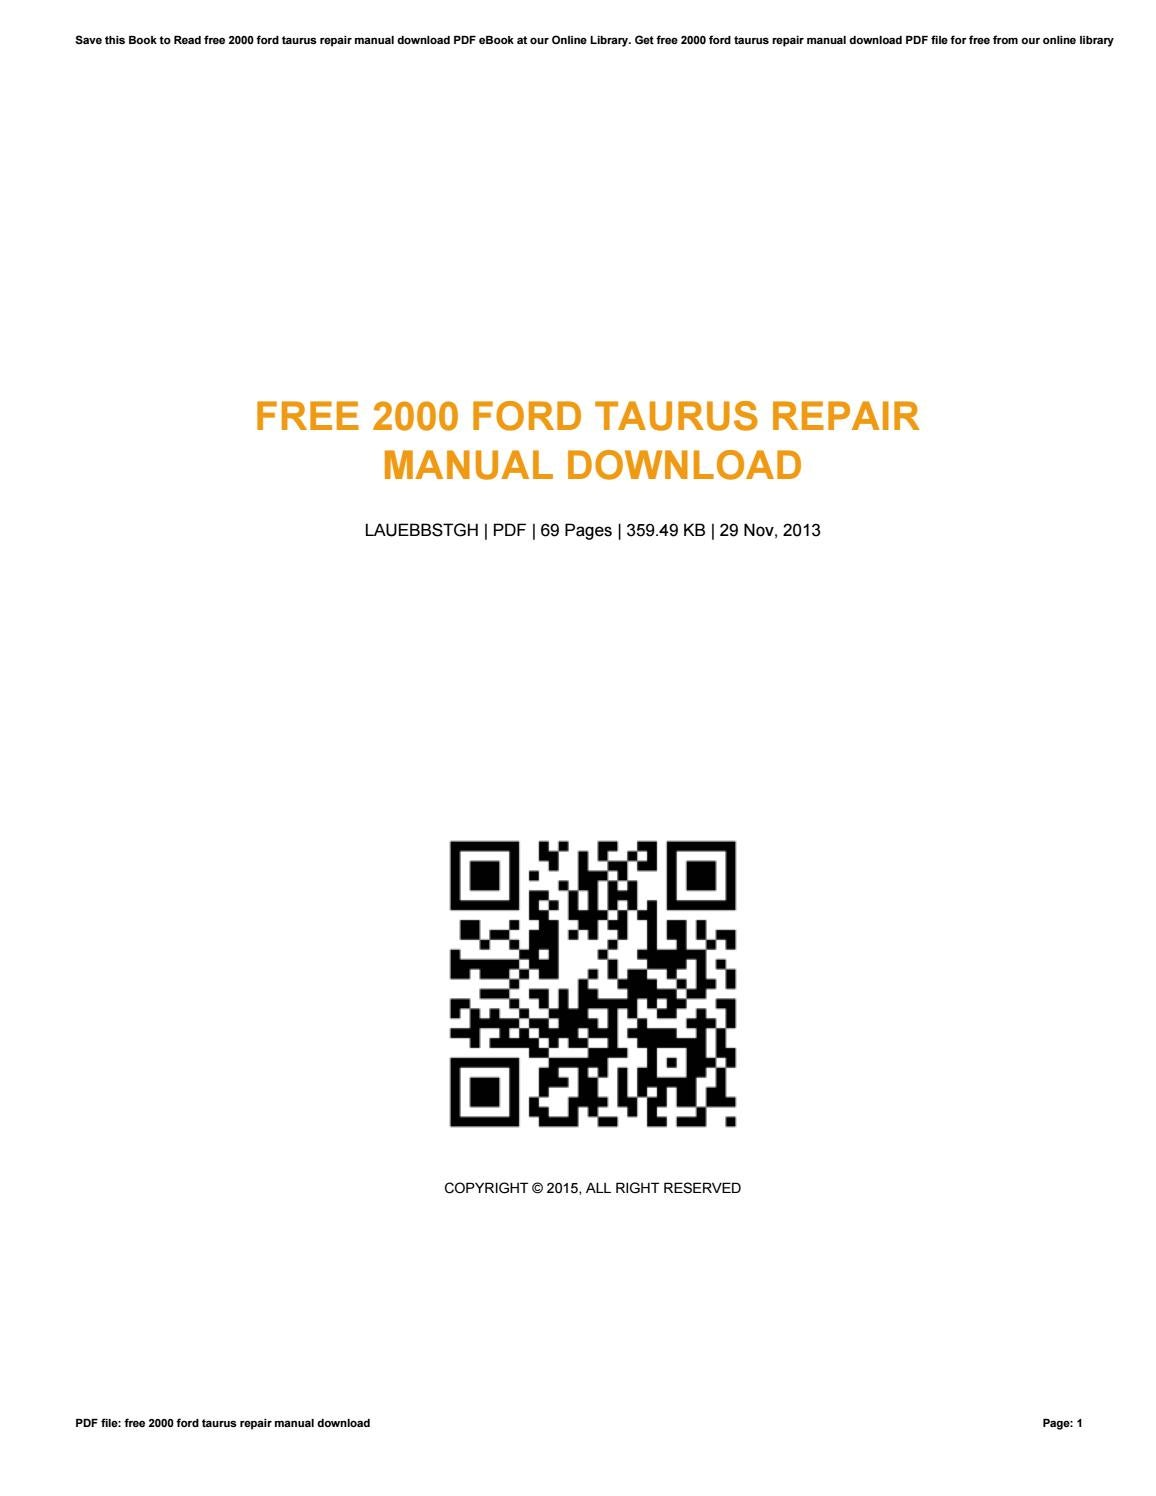 Free 2000 ford taurus repair manual download by BobbyNorsworthy2515 - issuu